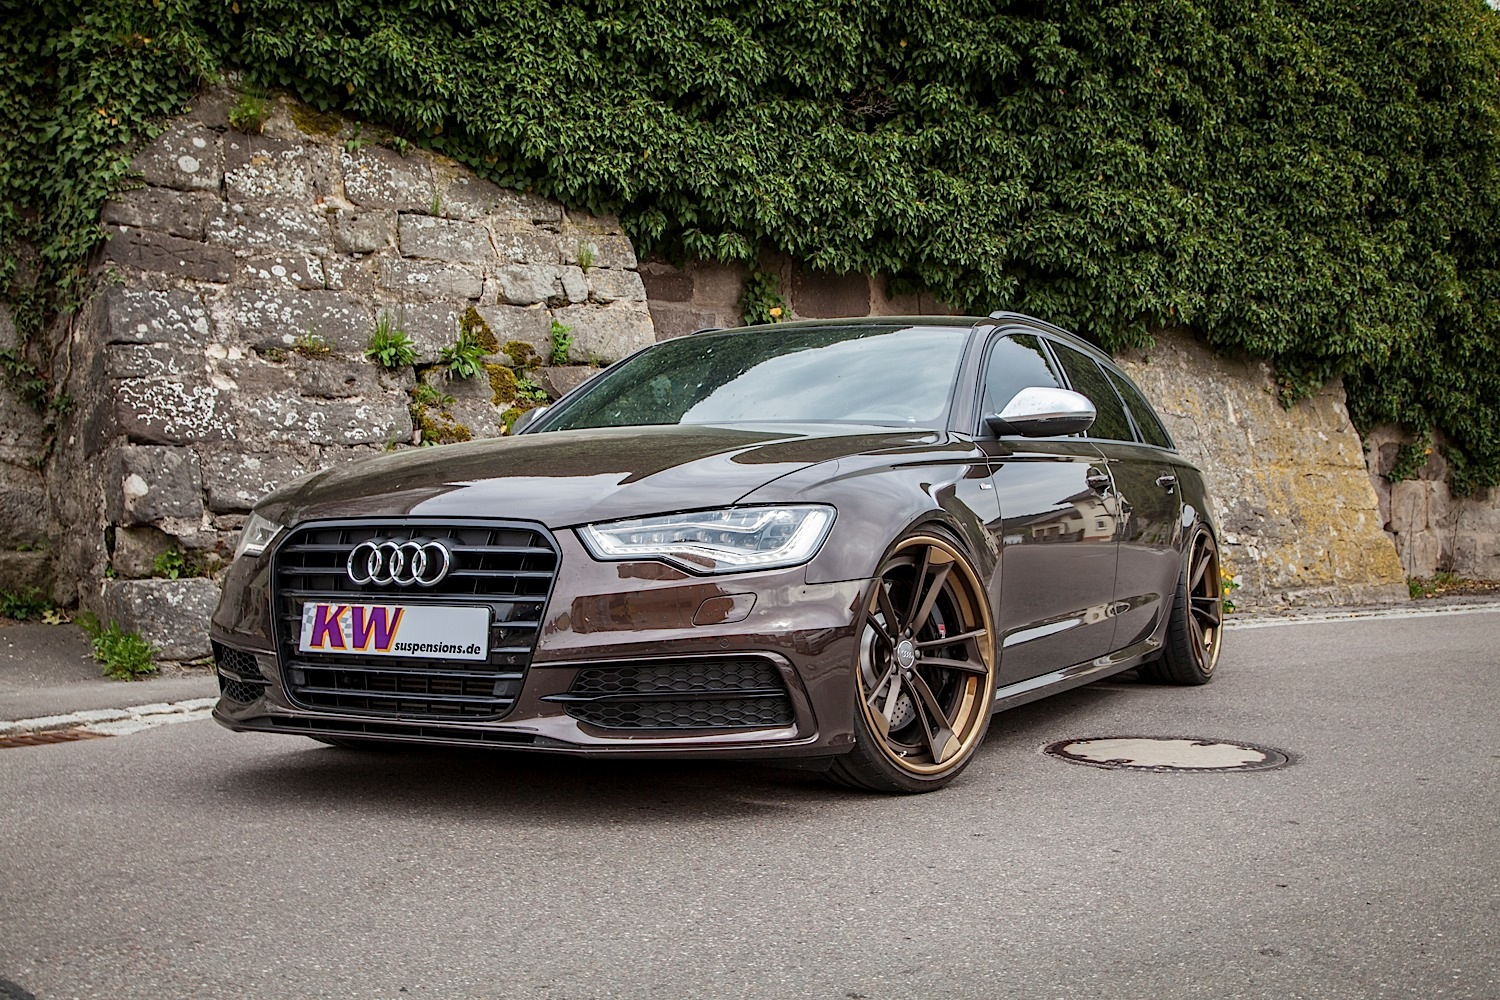 audi a6 avant gets kw suspension and 21 inch wheels autoevolution. Black Bedroom Furniture Sets. Home Design Ideas